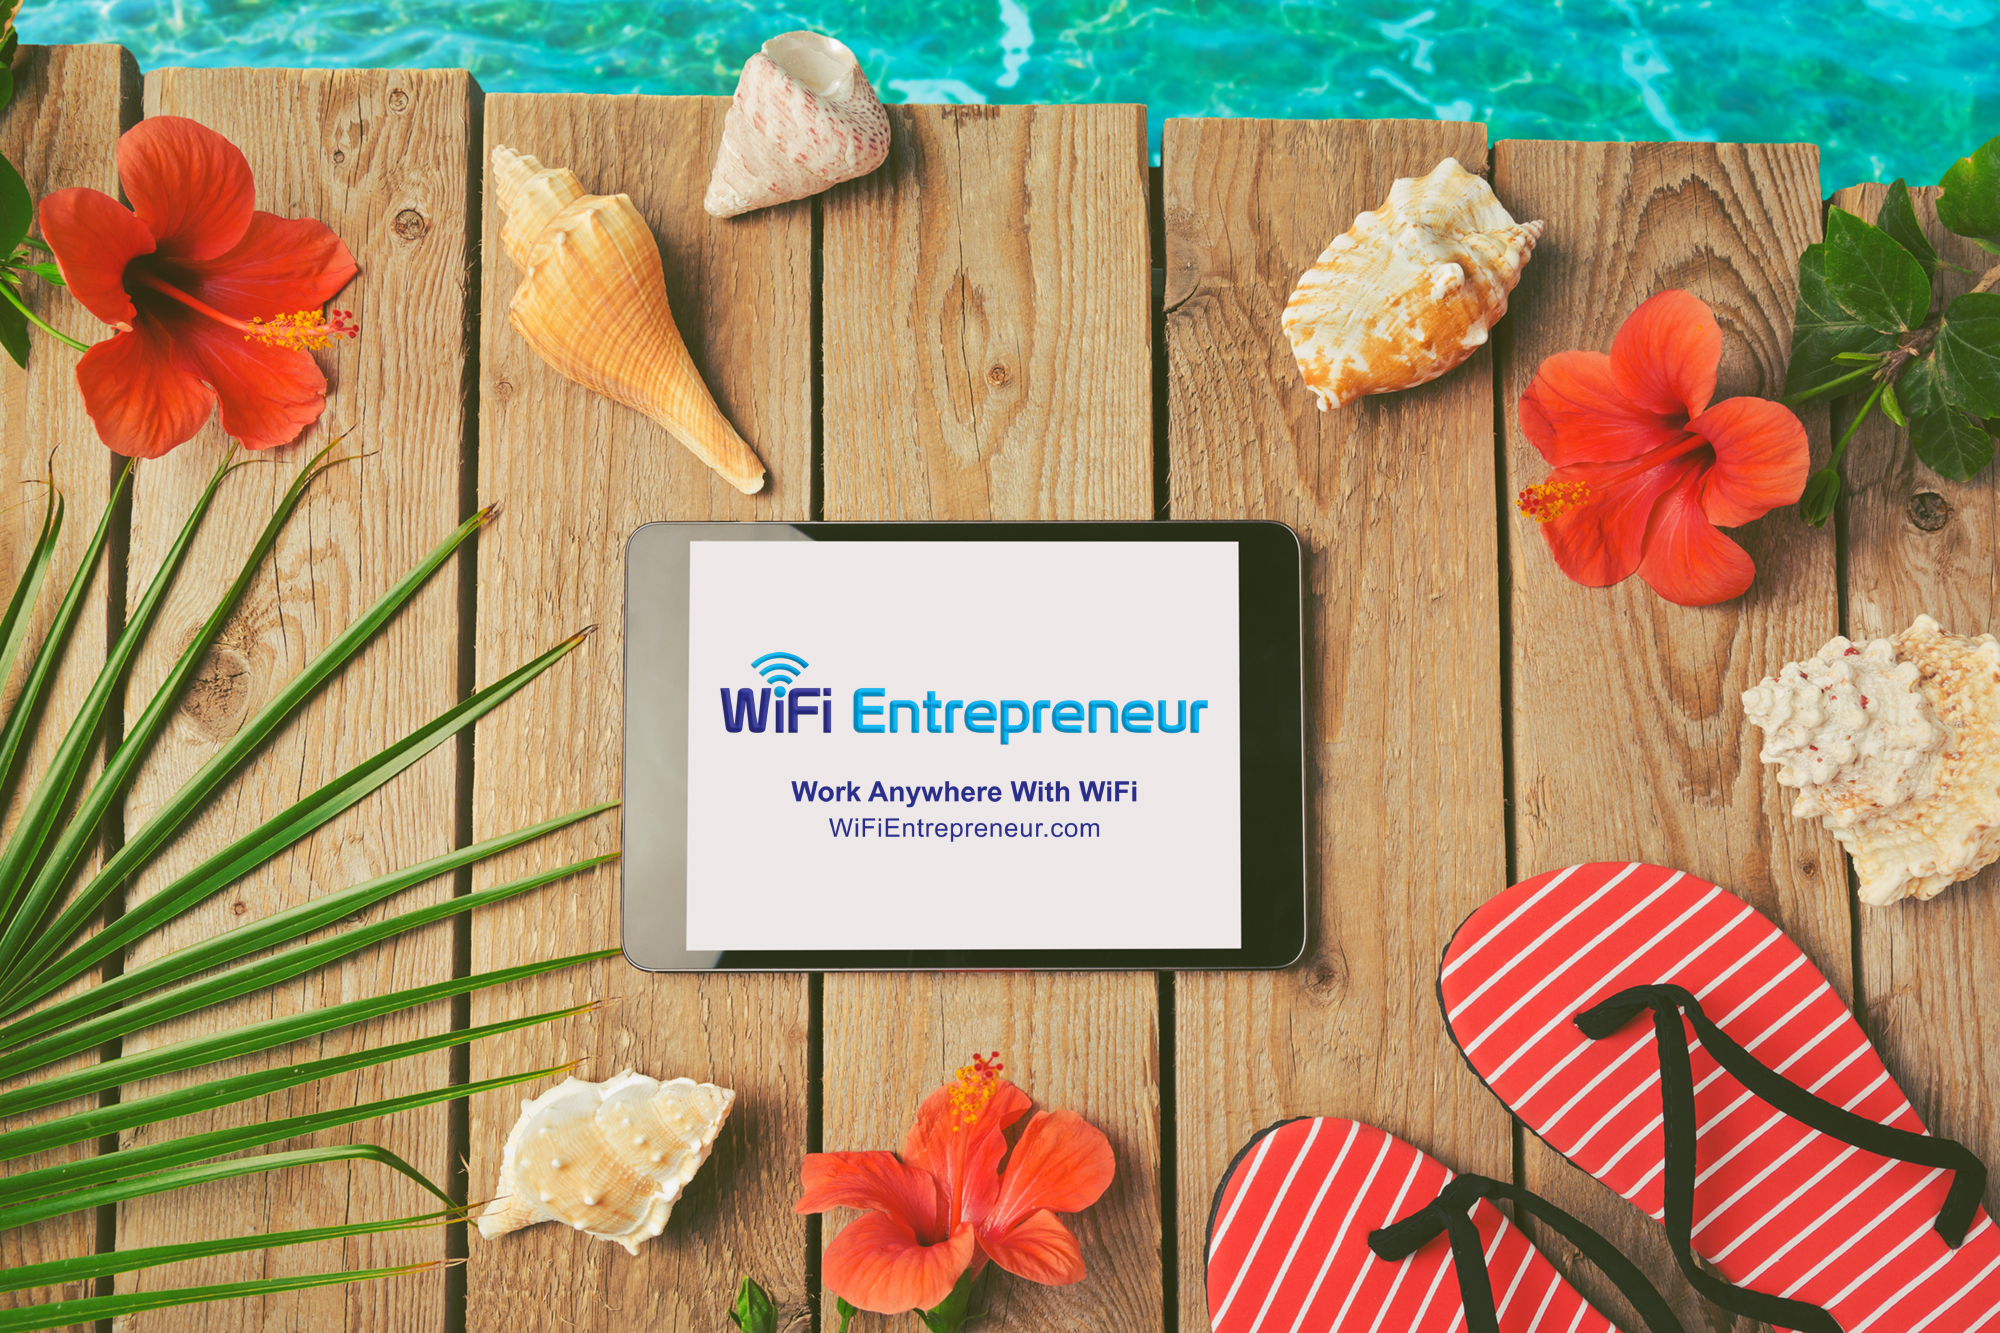 WiFi Entrepreneur Affiliate Marketing Guide 4